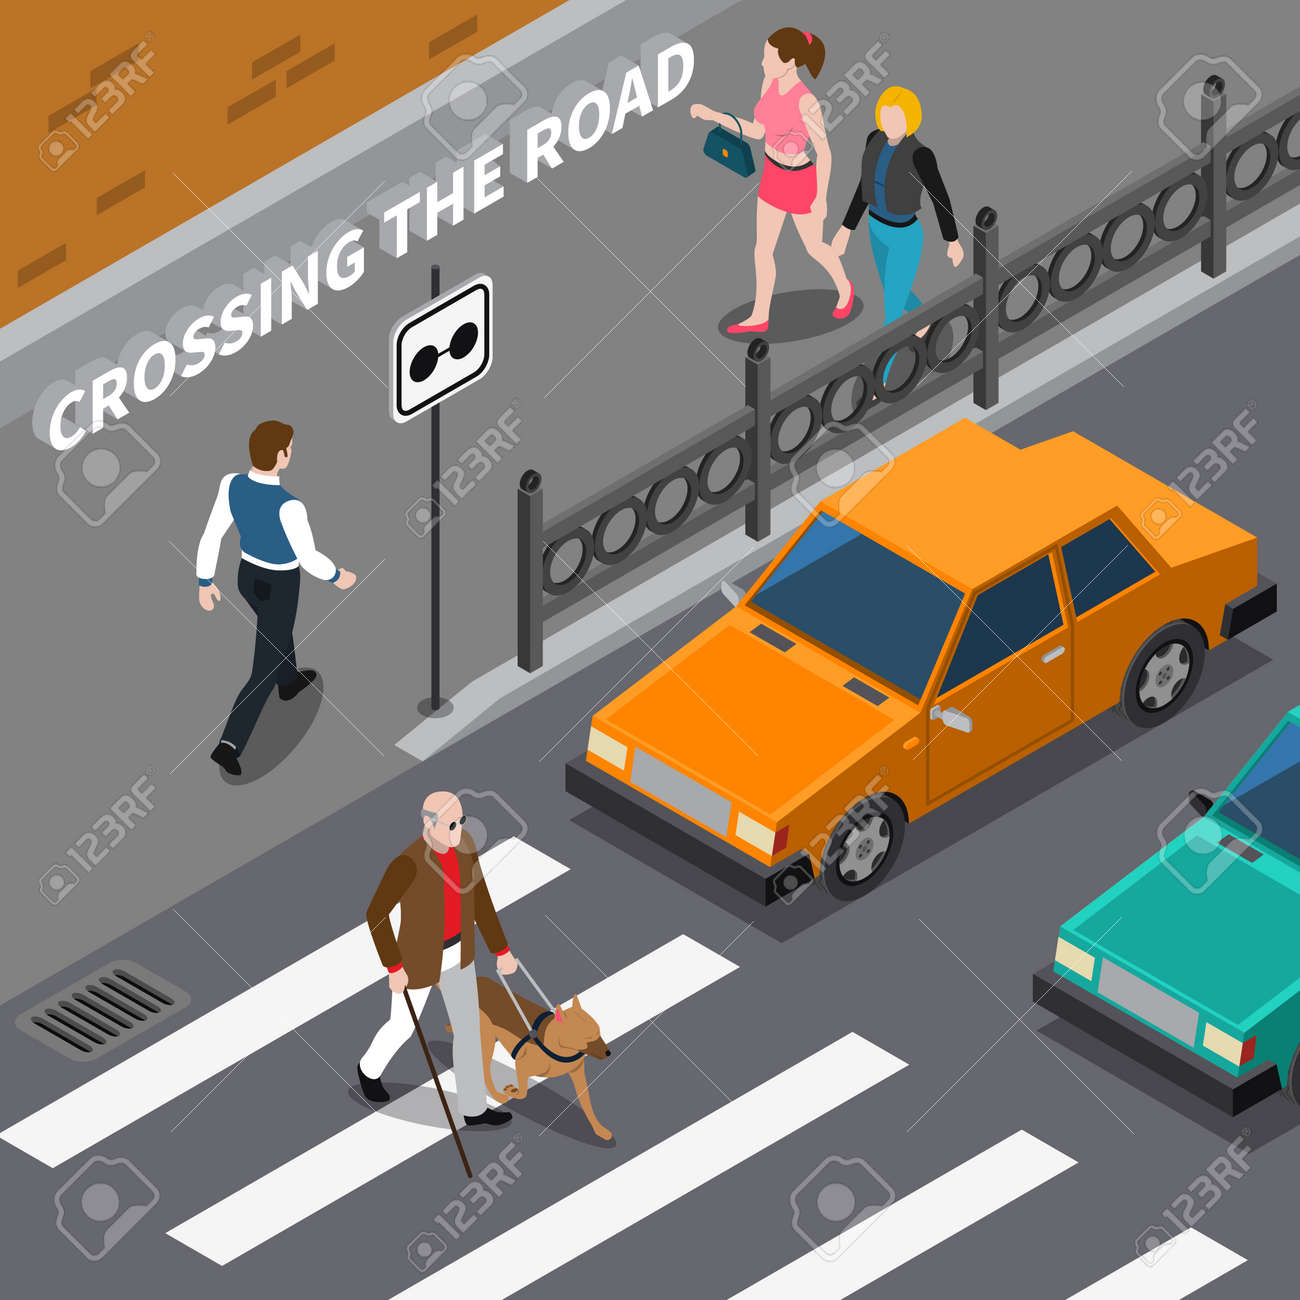 Blind person with cane and seeing eye dog on crosswalk cars waiting on road isometric vector illustration - 165634761